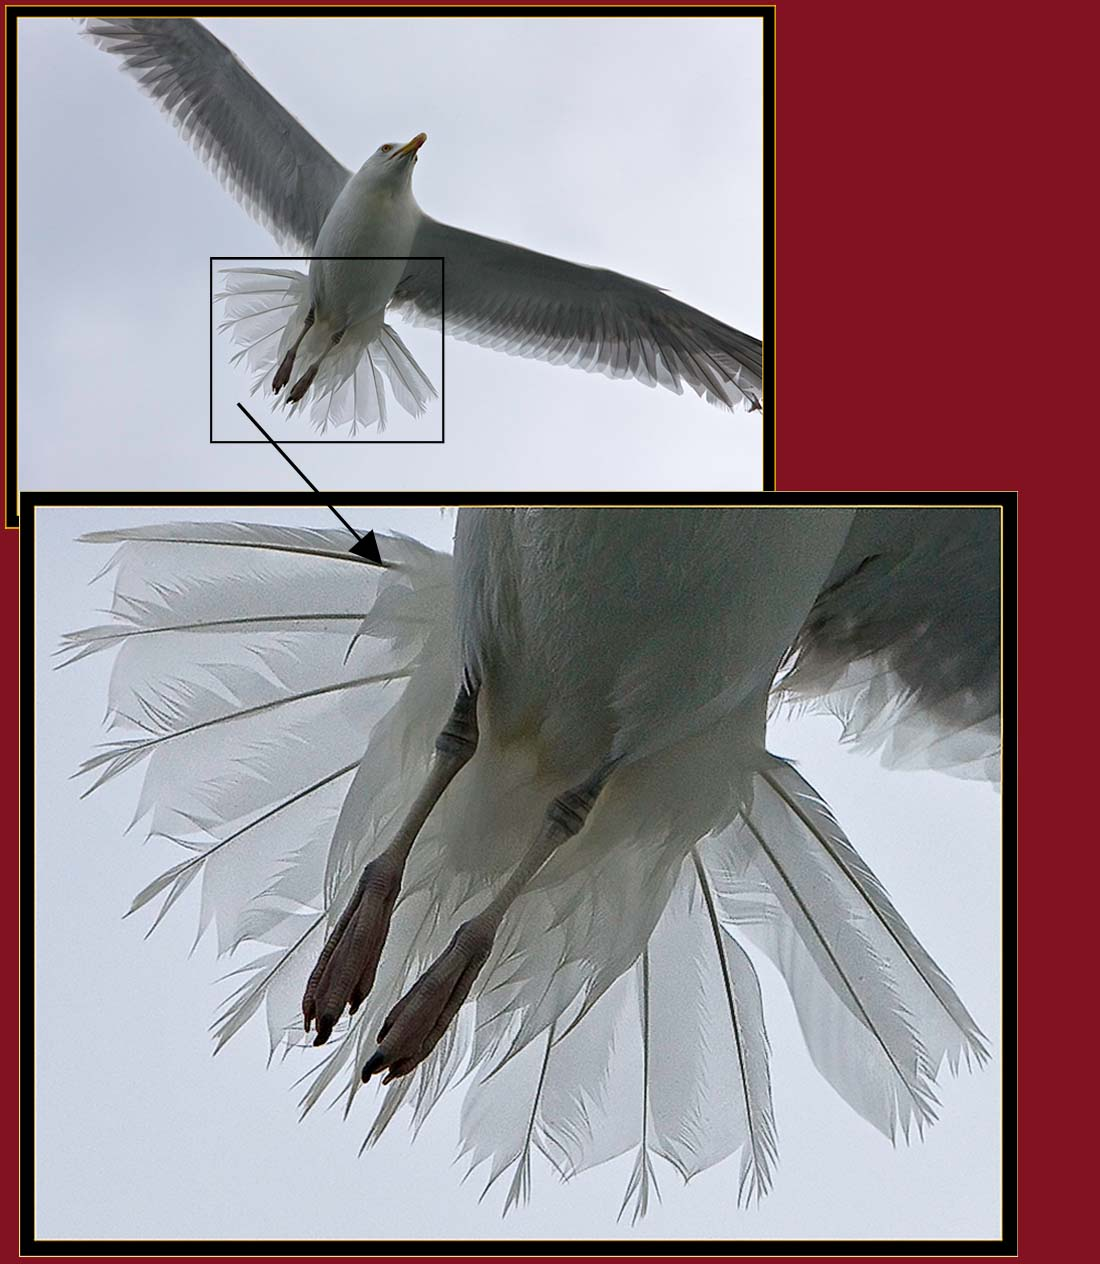 Herring Gull demonstration